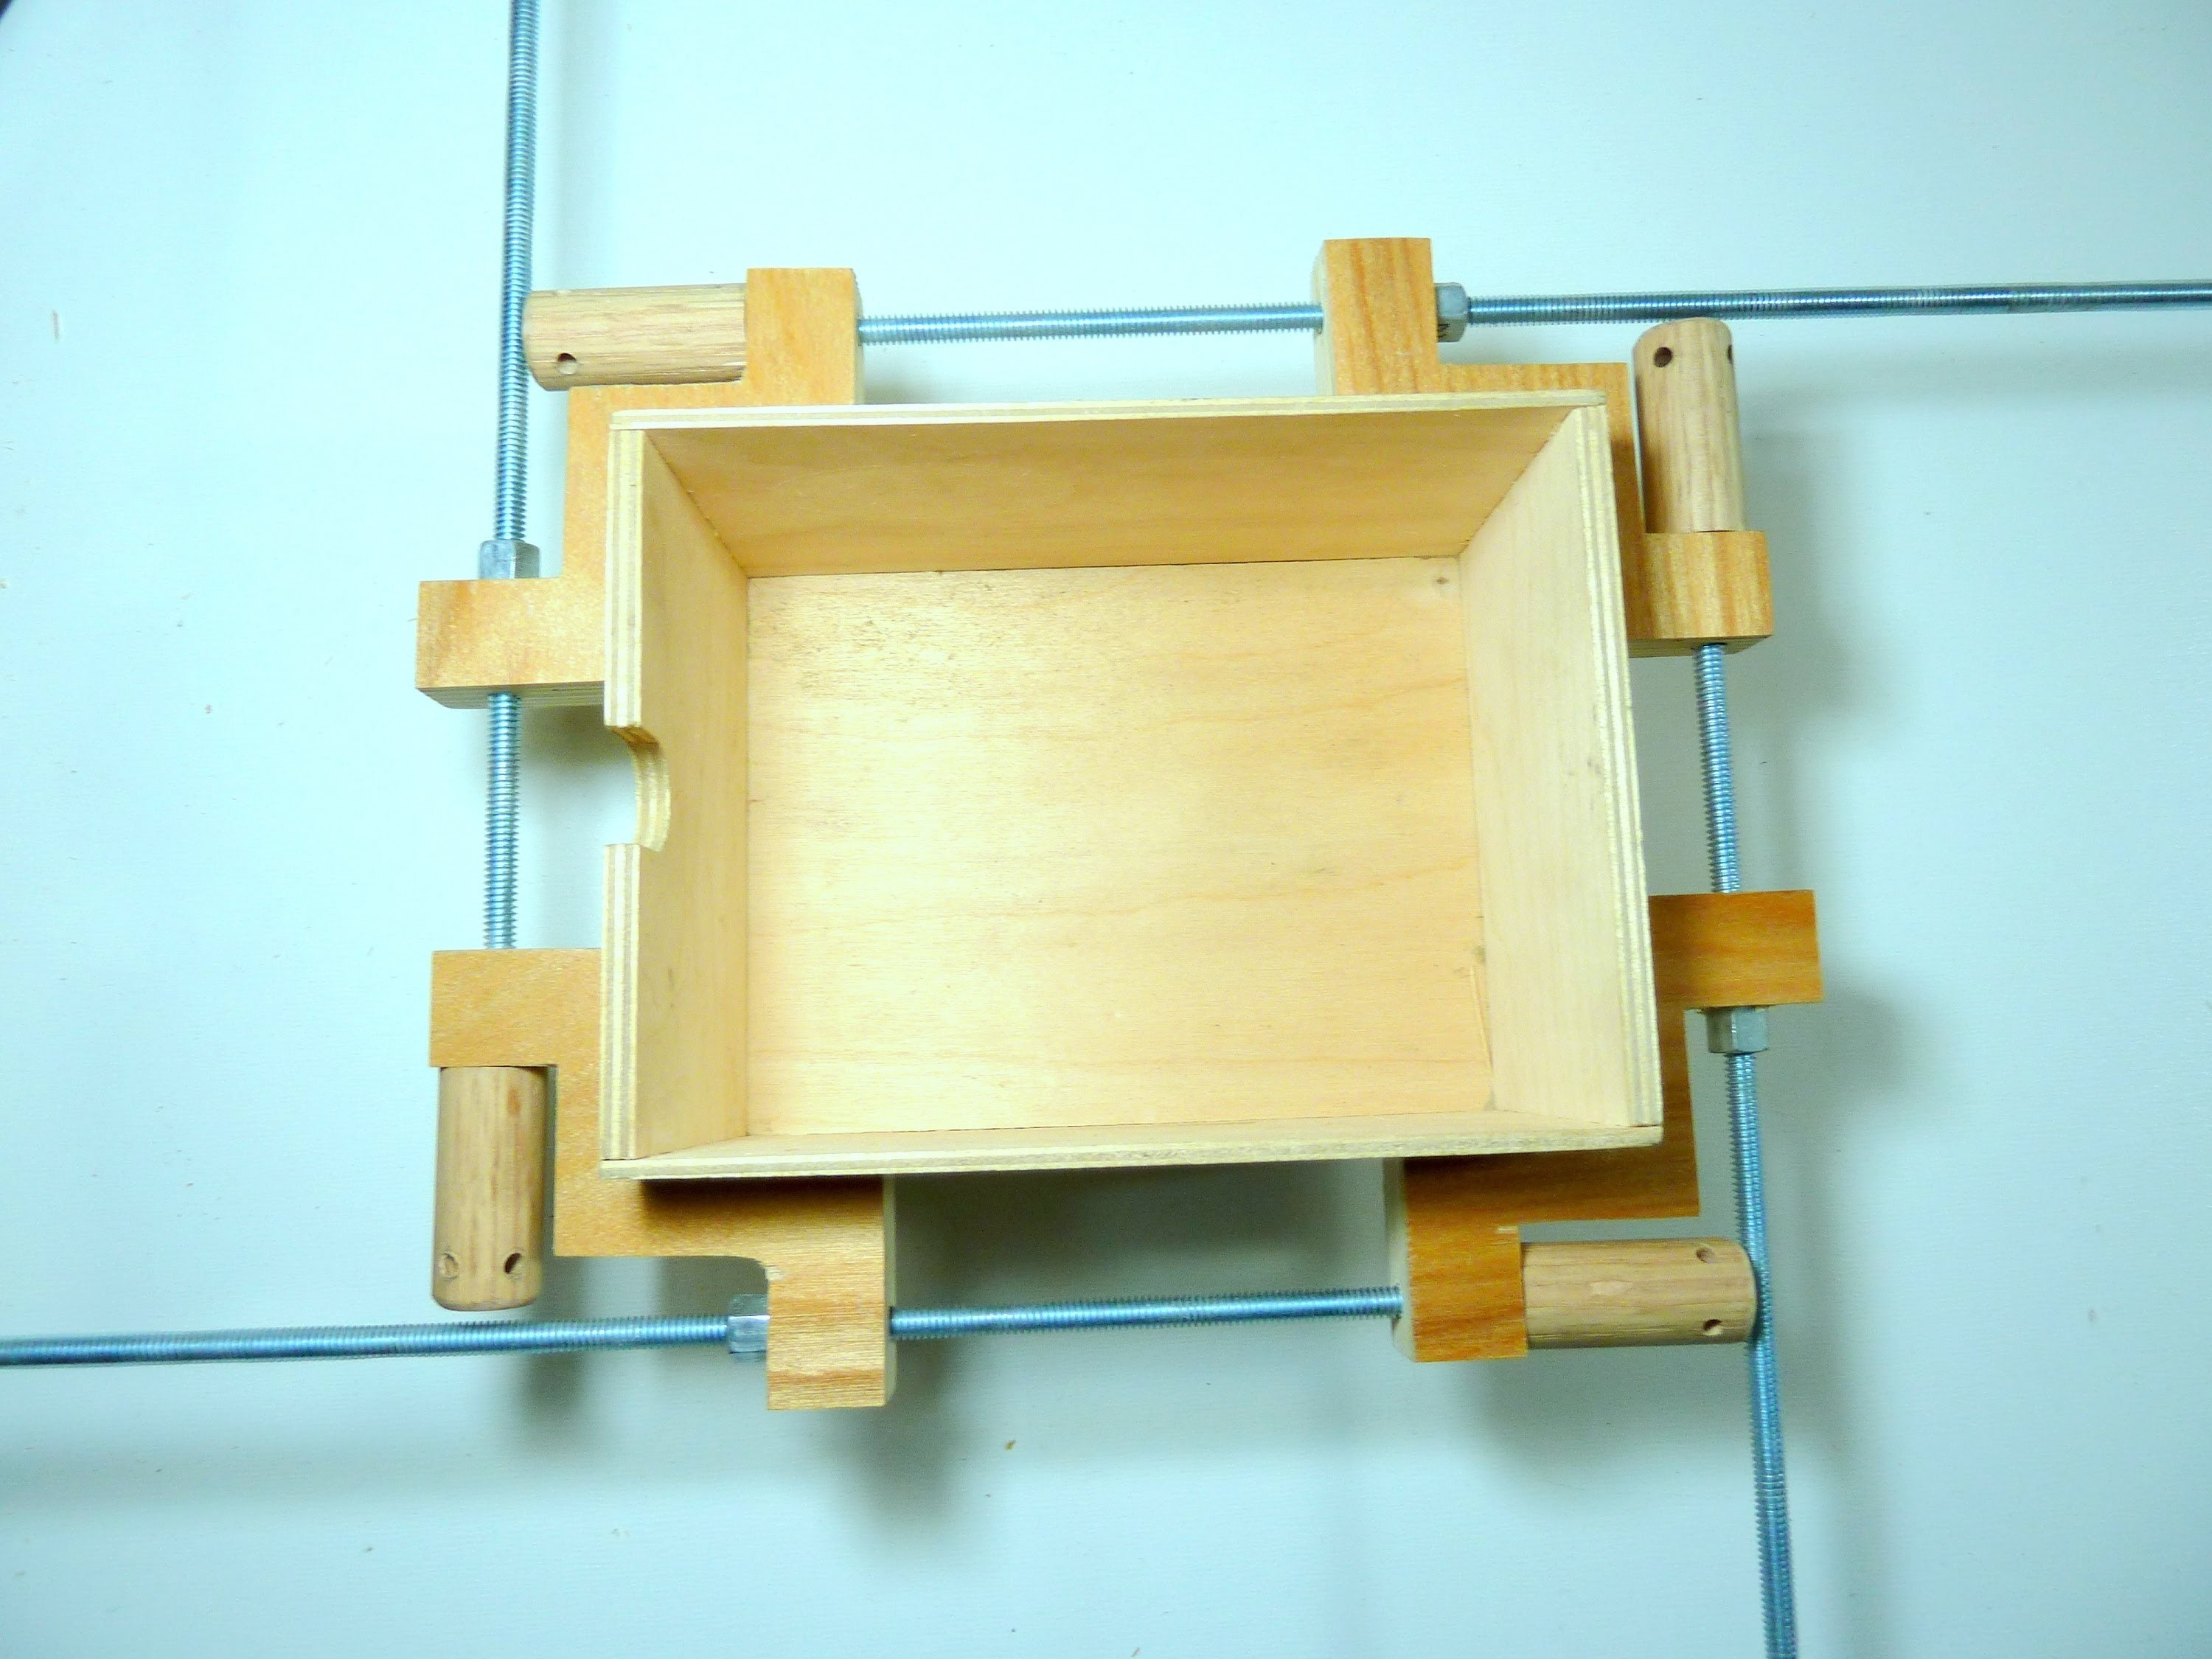 Making a frame and box clamp